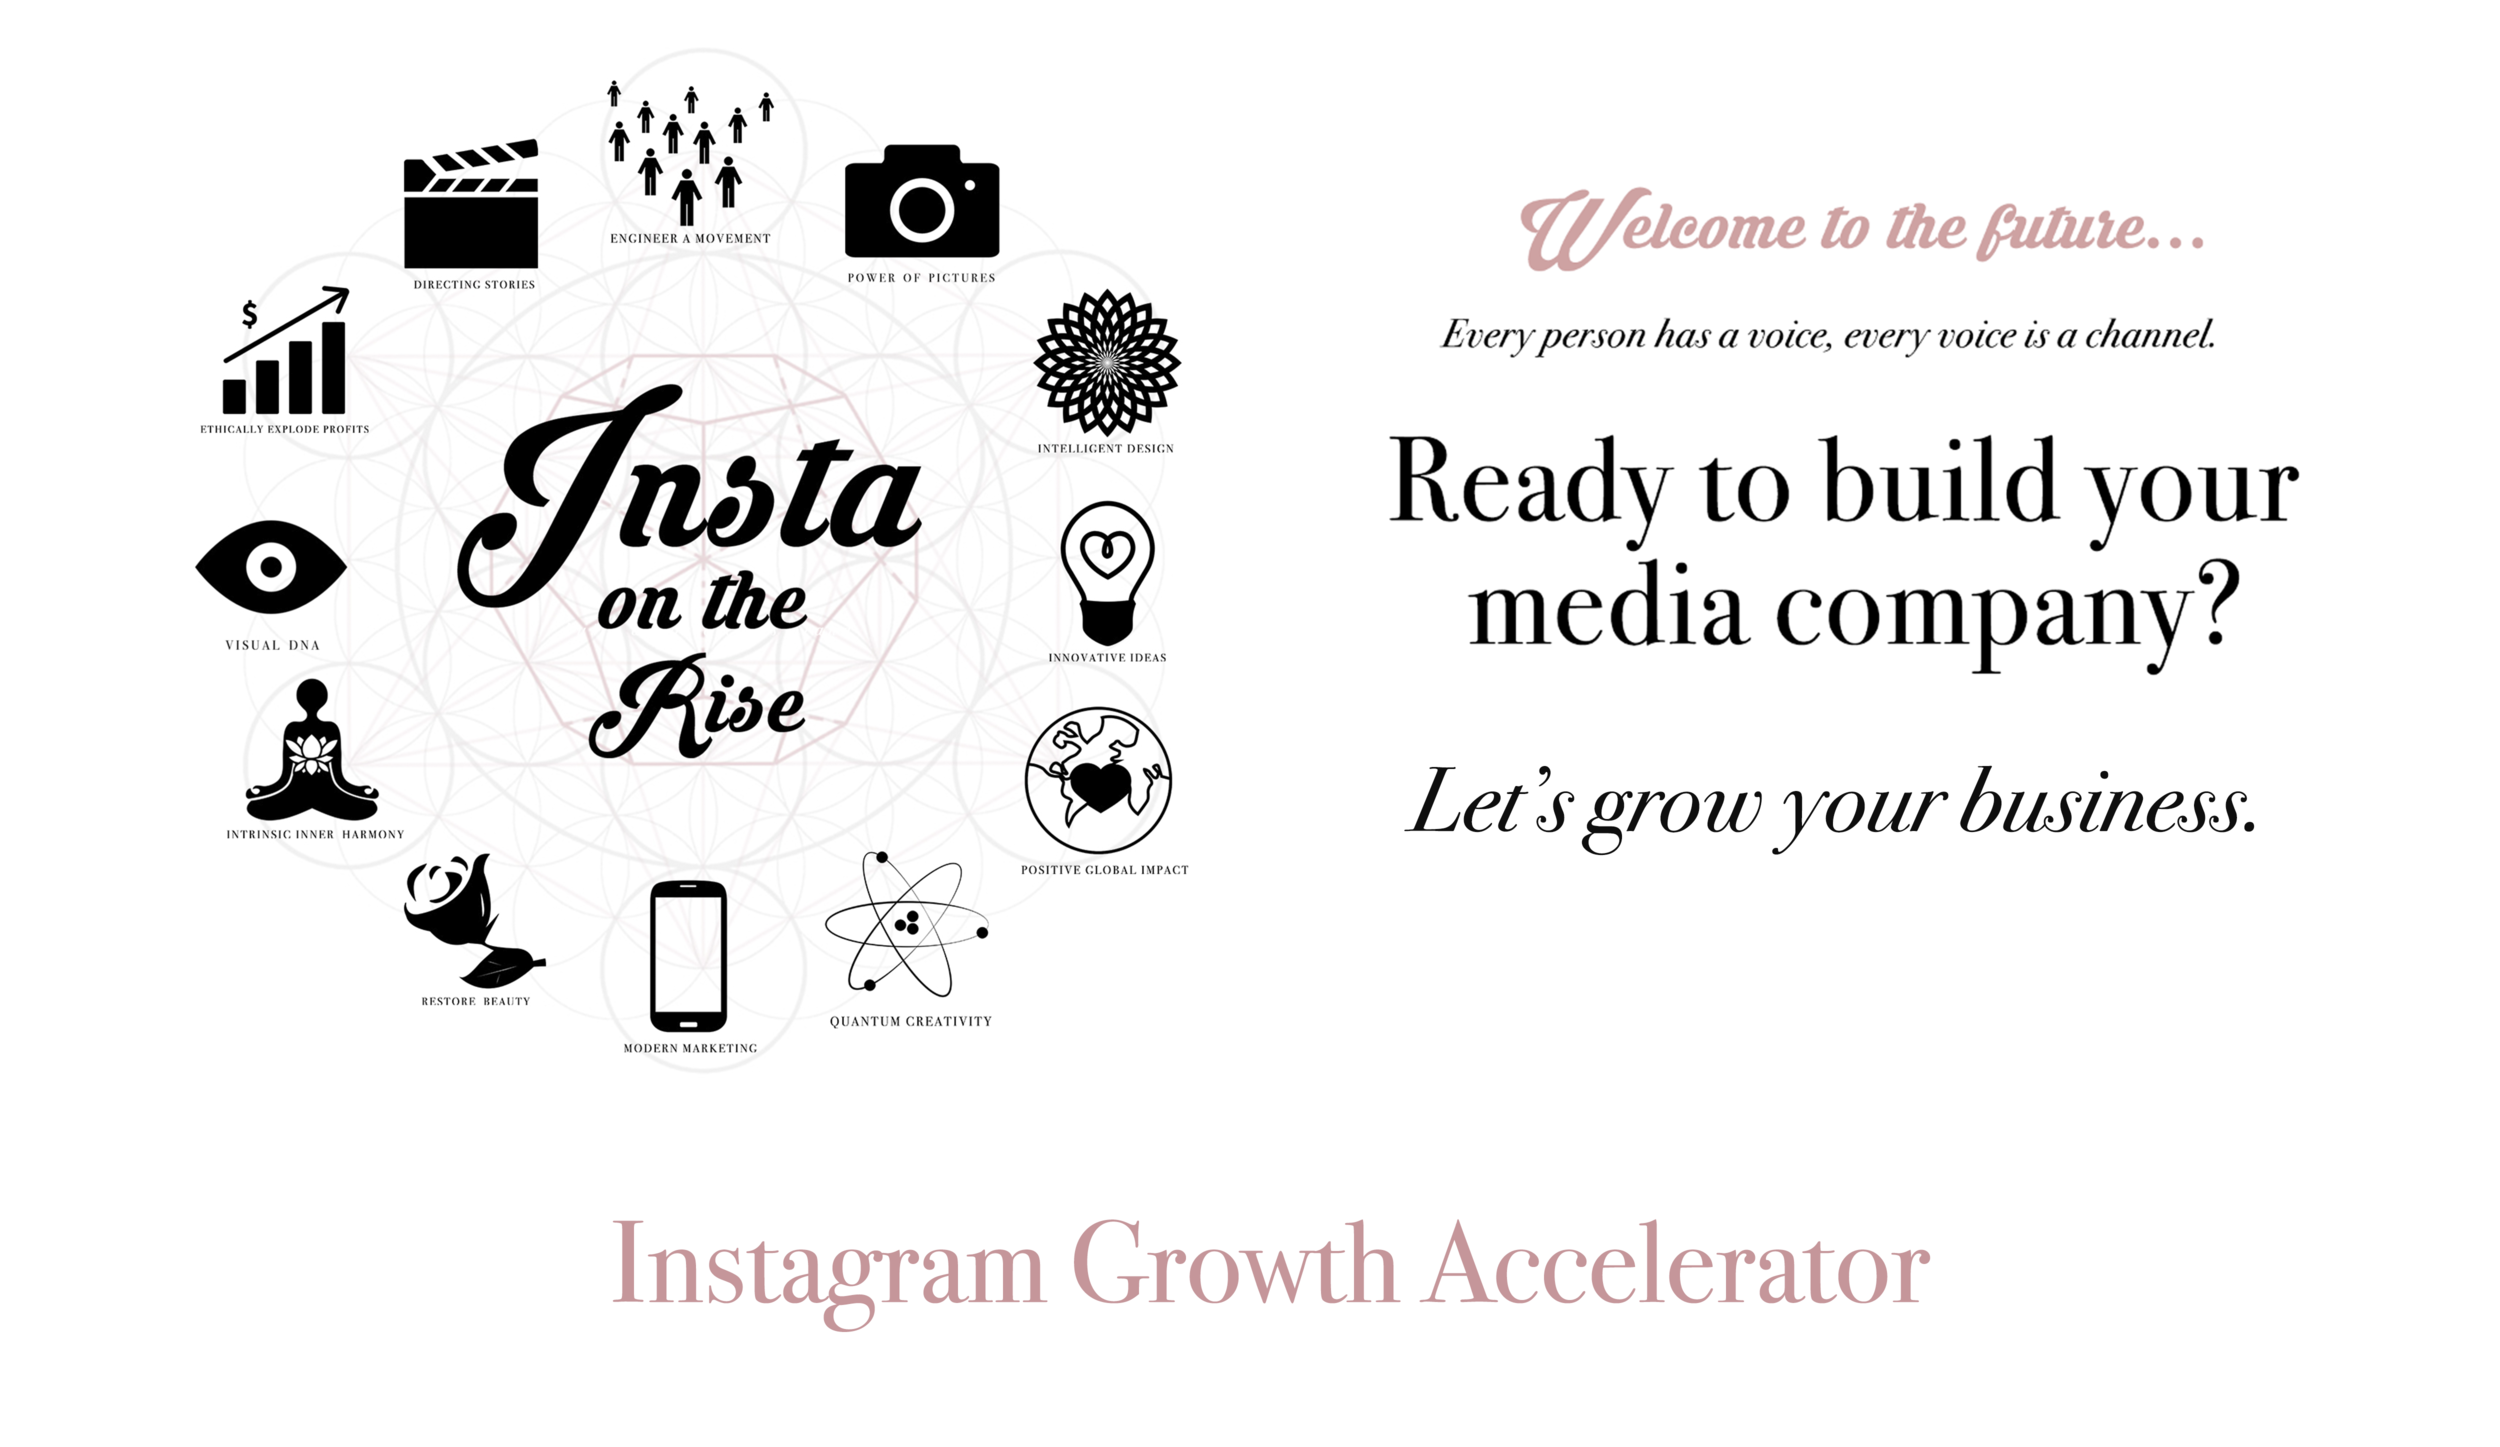 Crystal Schreiner Insta on the Rise Accelerator